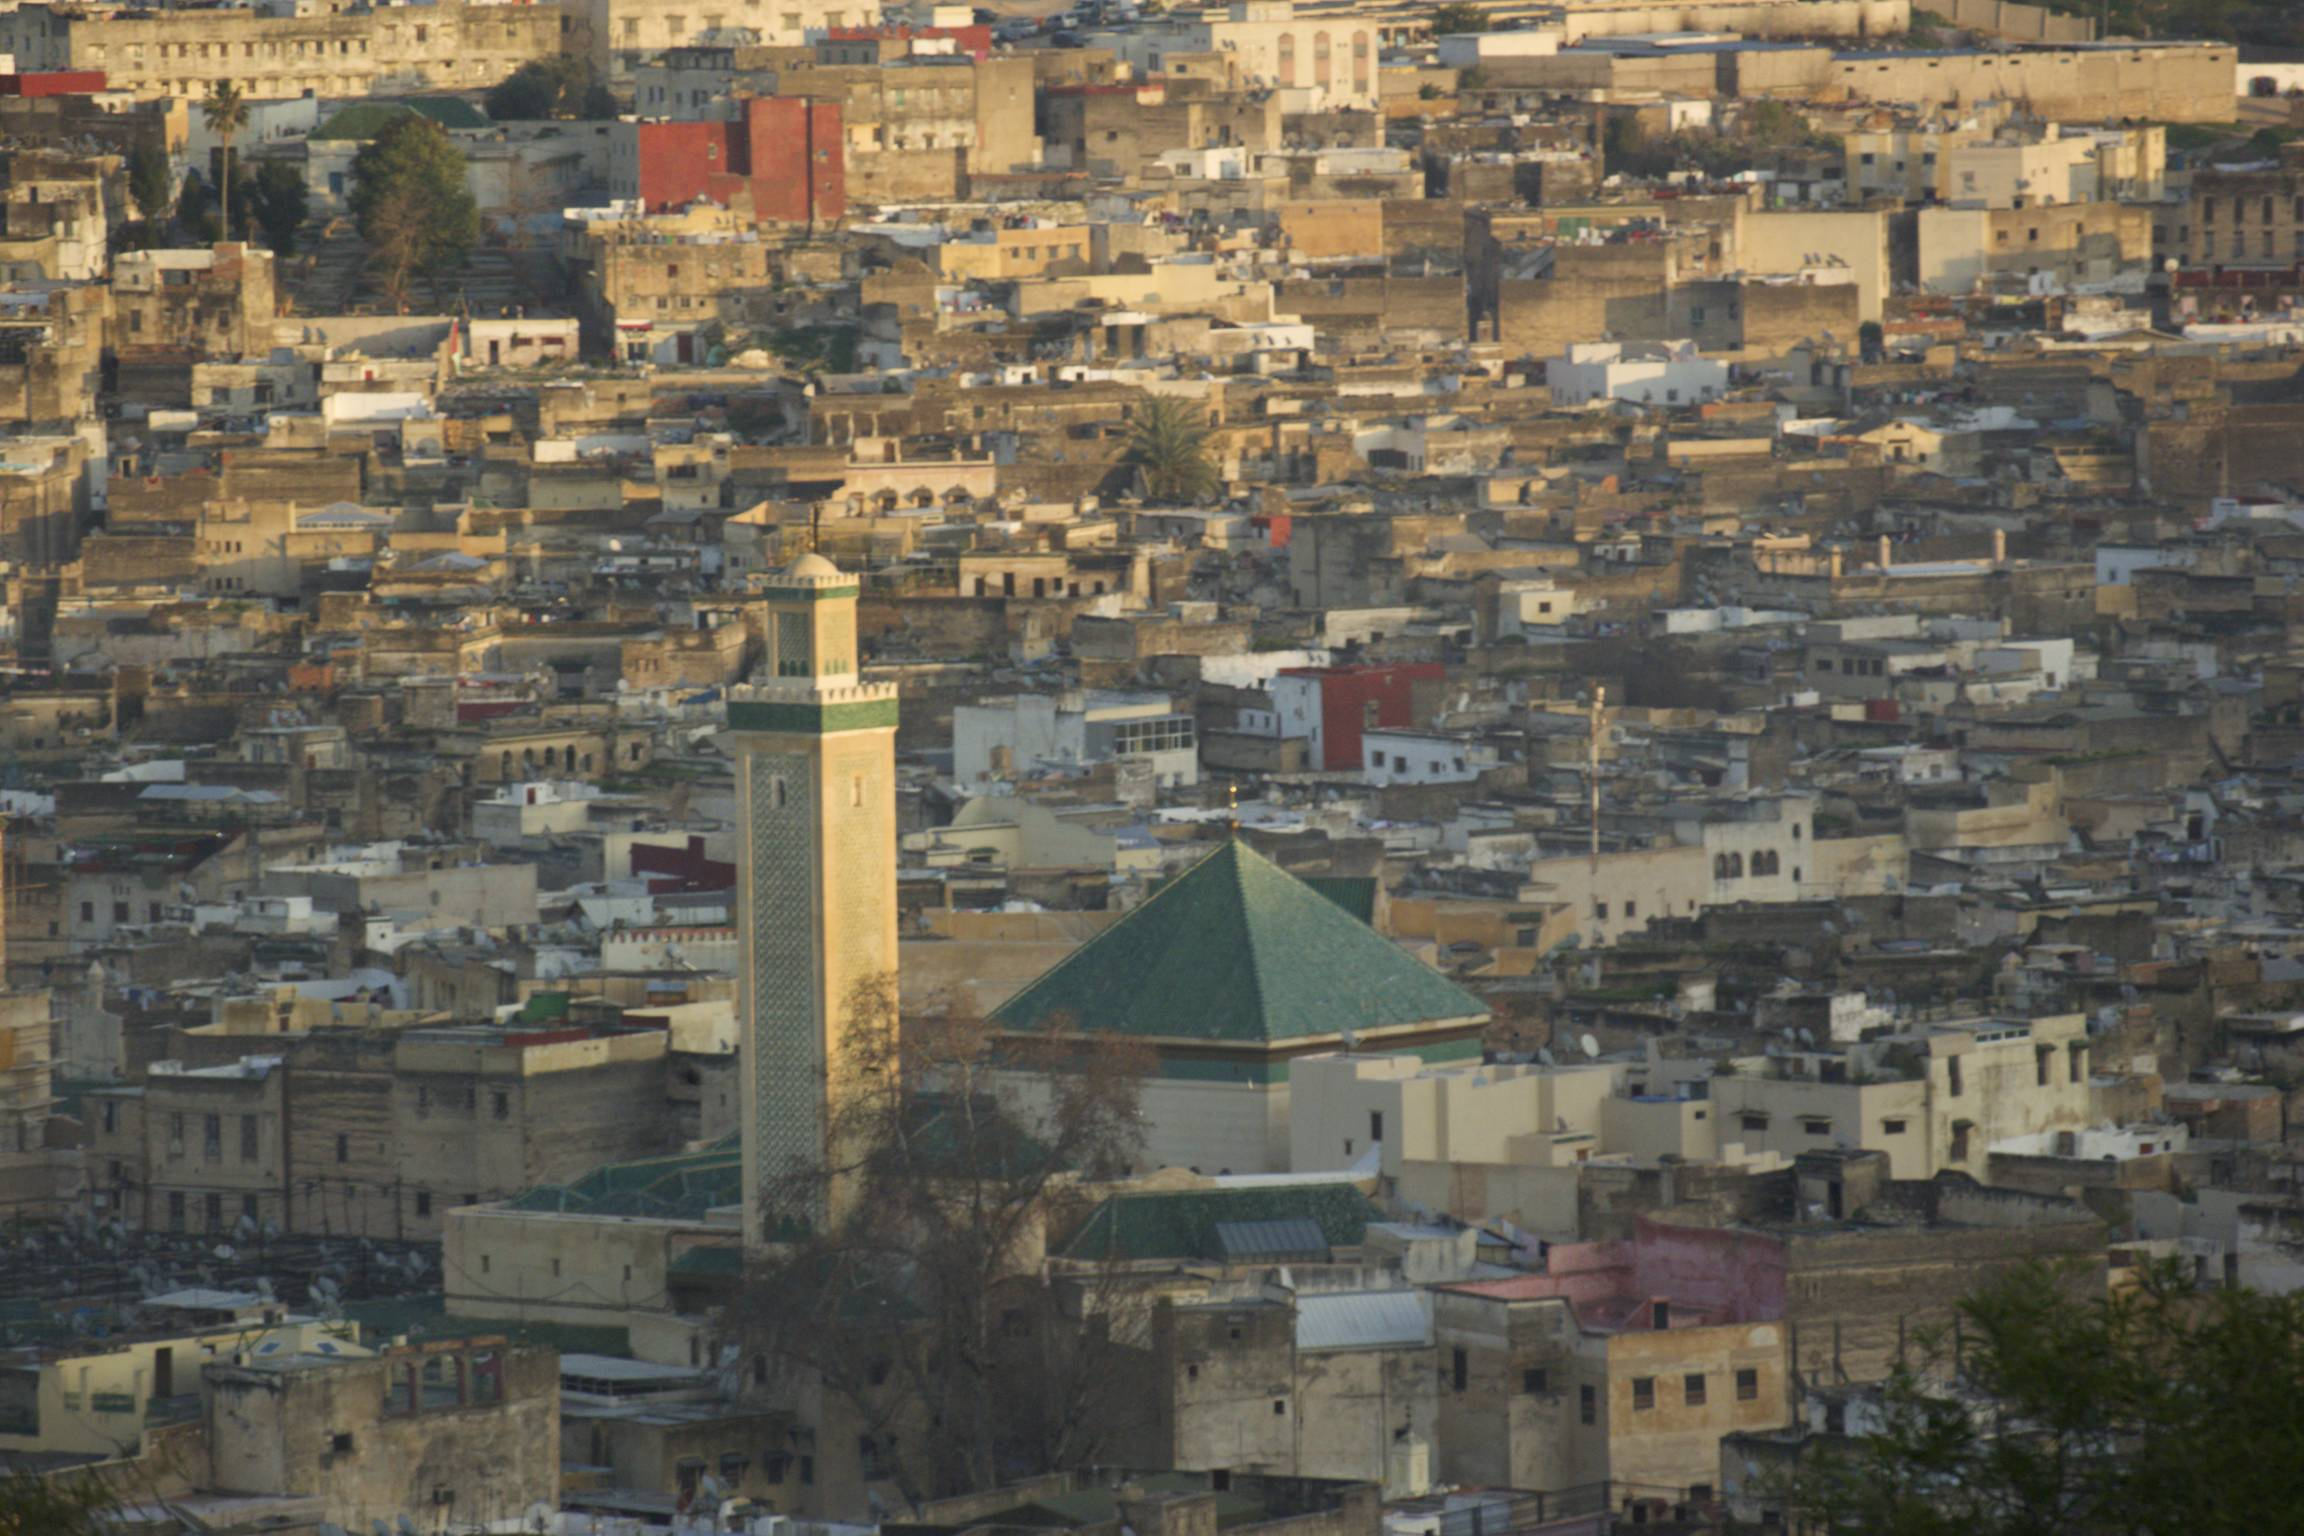 Fez medina from a nearby hill. University in the foreground with the green roof.